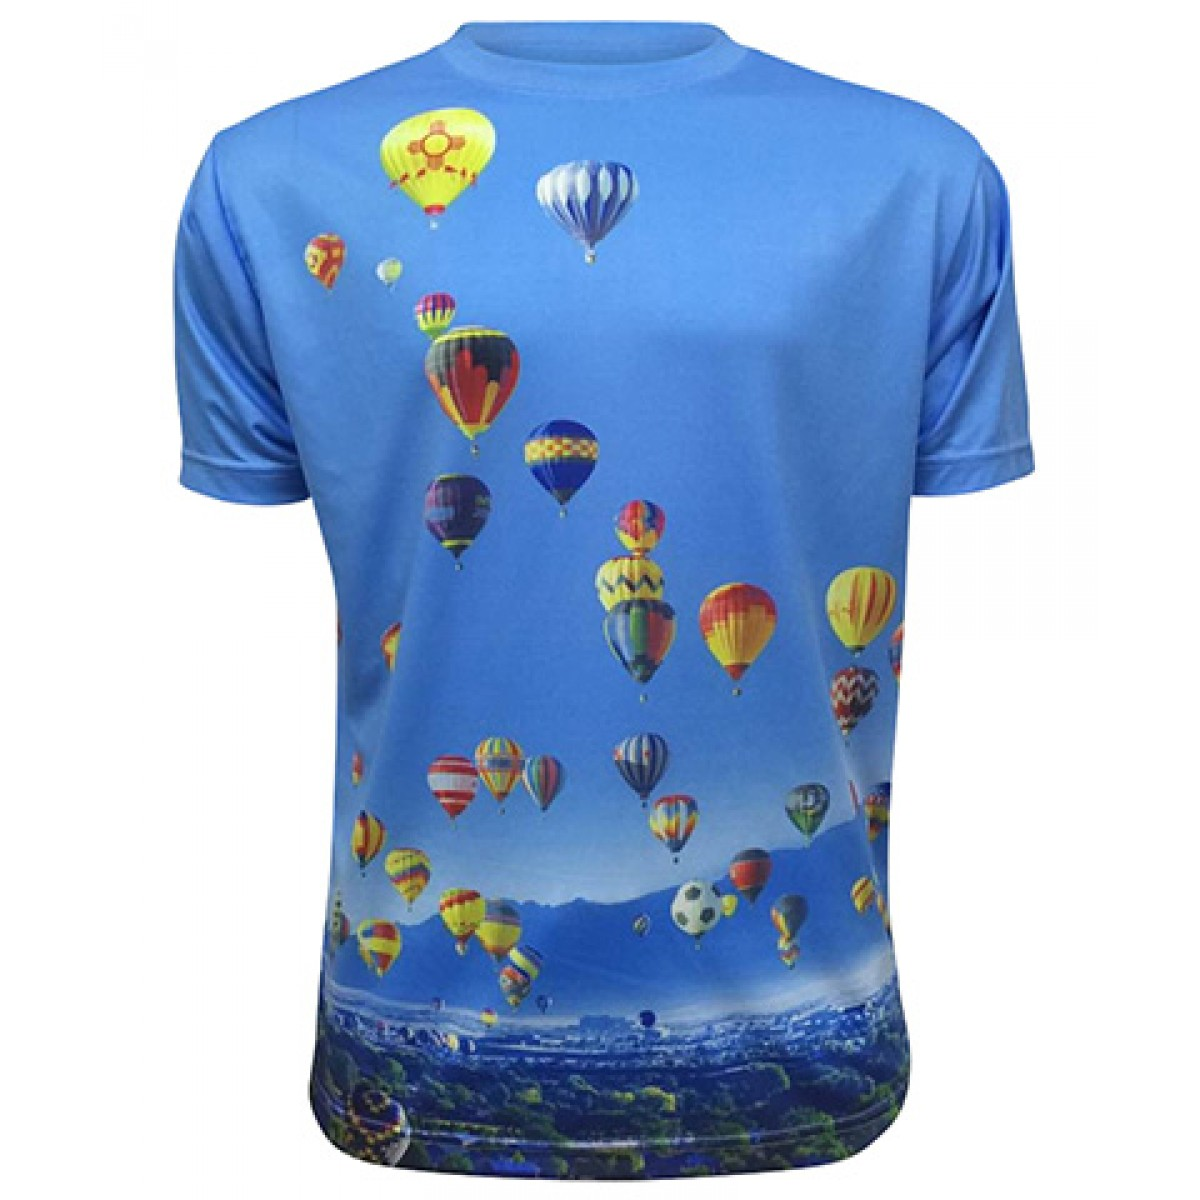 AIBF Sublimated Short Sleeve-Blue-M